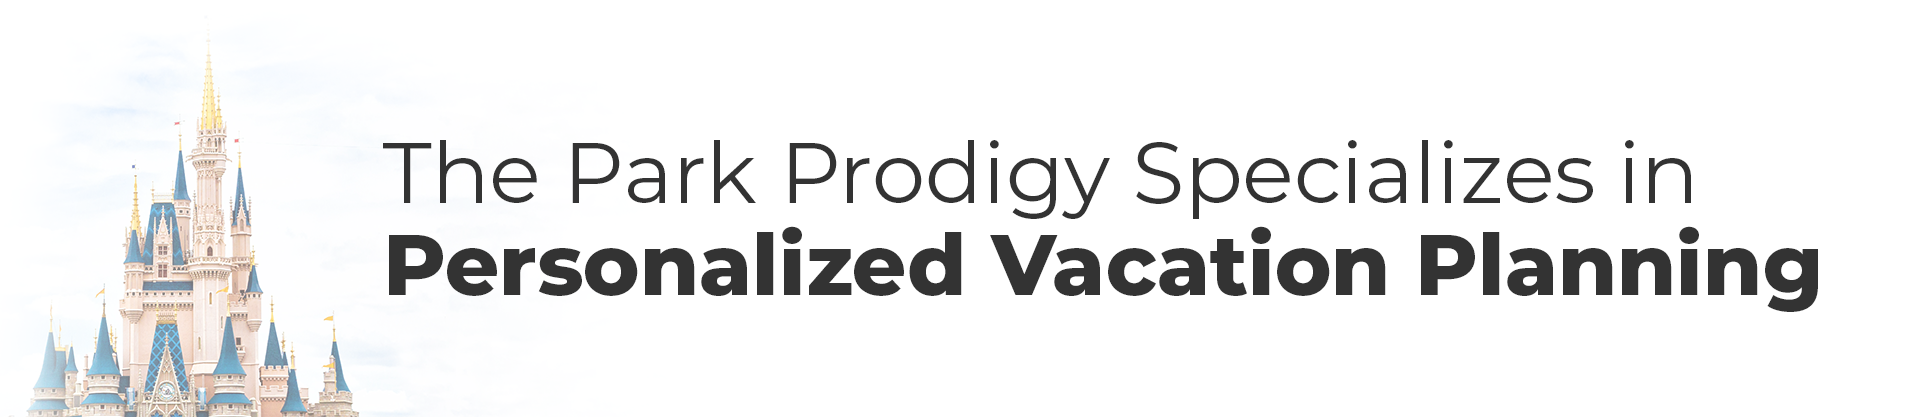 disney-world-vacation-packages-with-the-park-prodigy